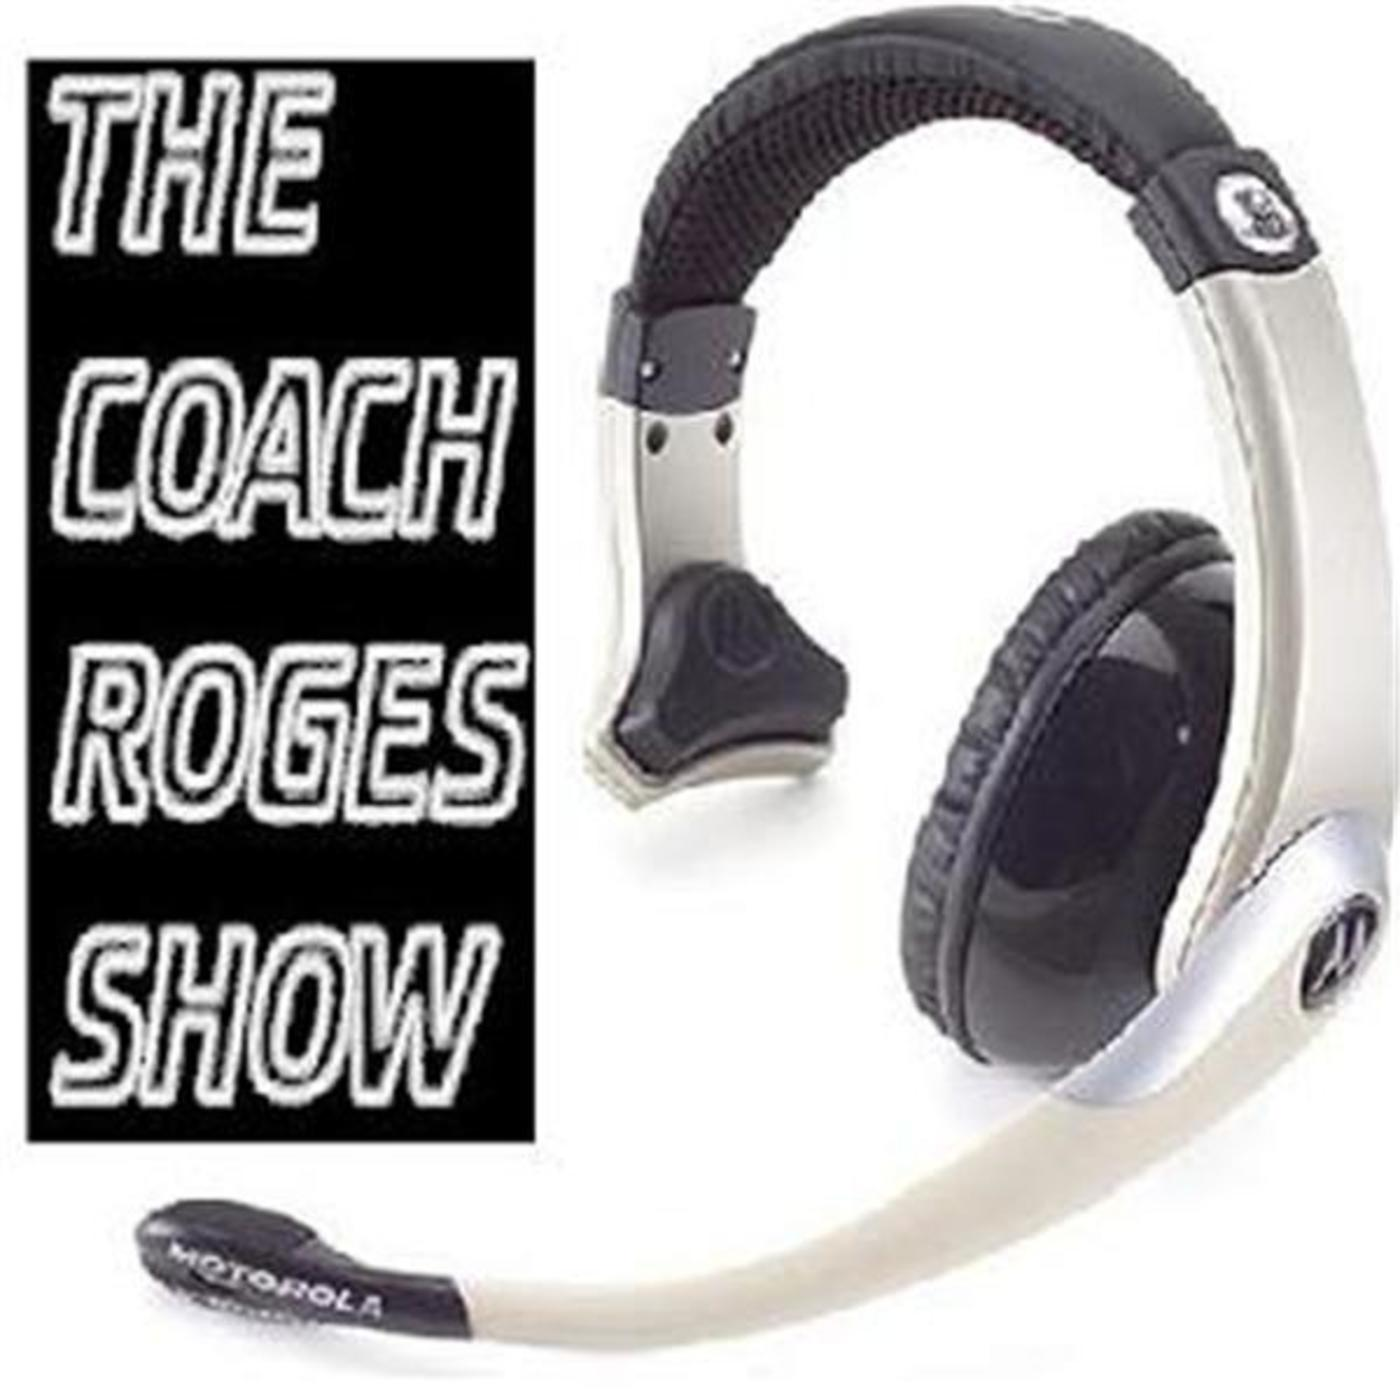 The Coach Roges Show